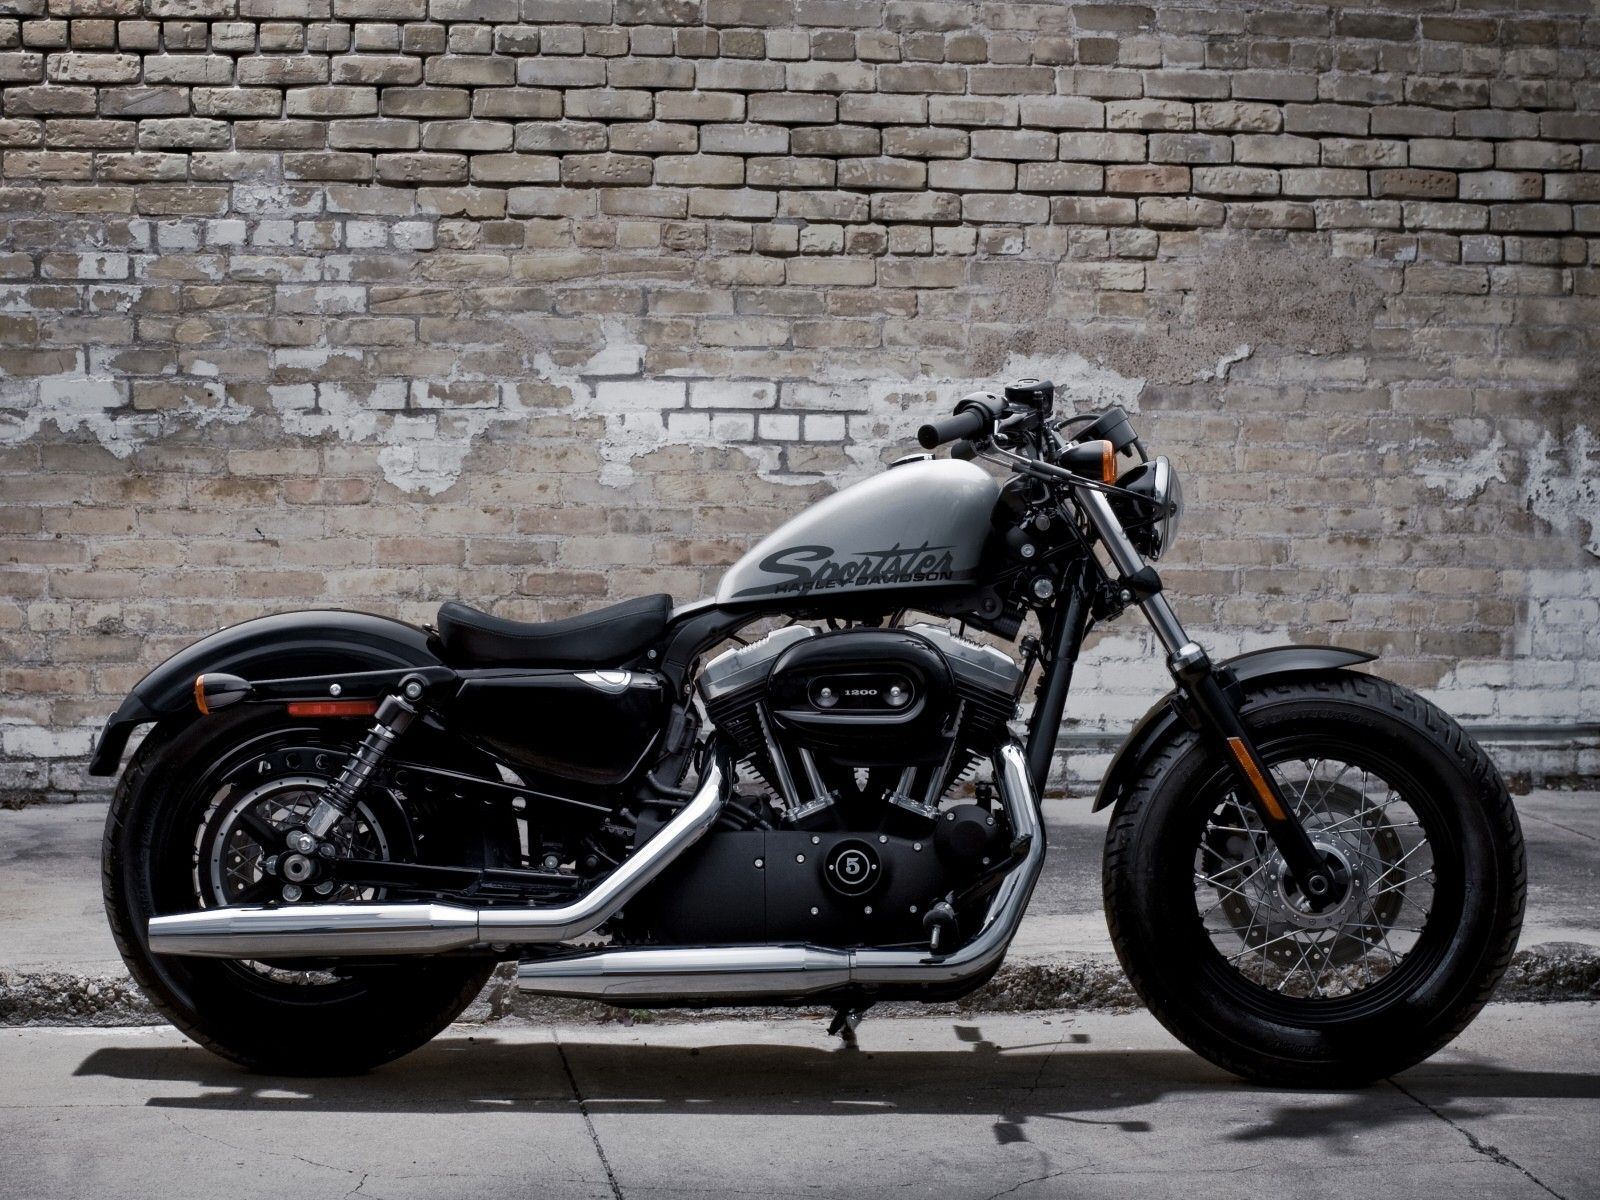 XL 1200 Forty Eight Harley Davidson XL 1200 Sportster Forty Eight